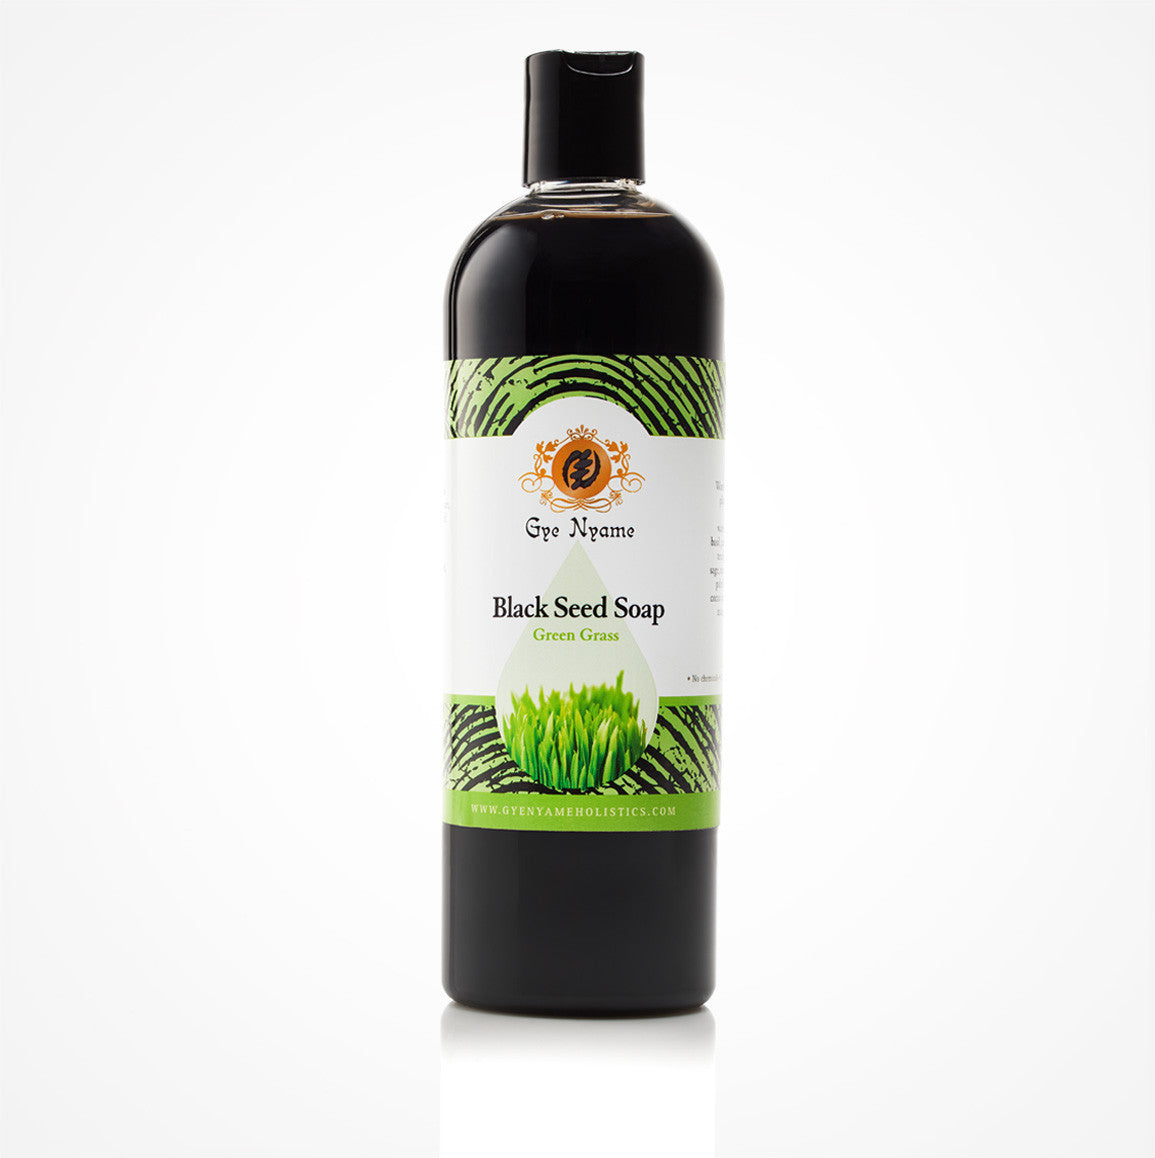 Gye Nyame Black Seed Liquid Soap Green Grass (Nigella Sativa)